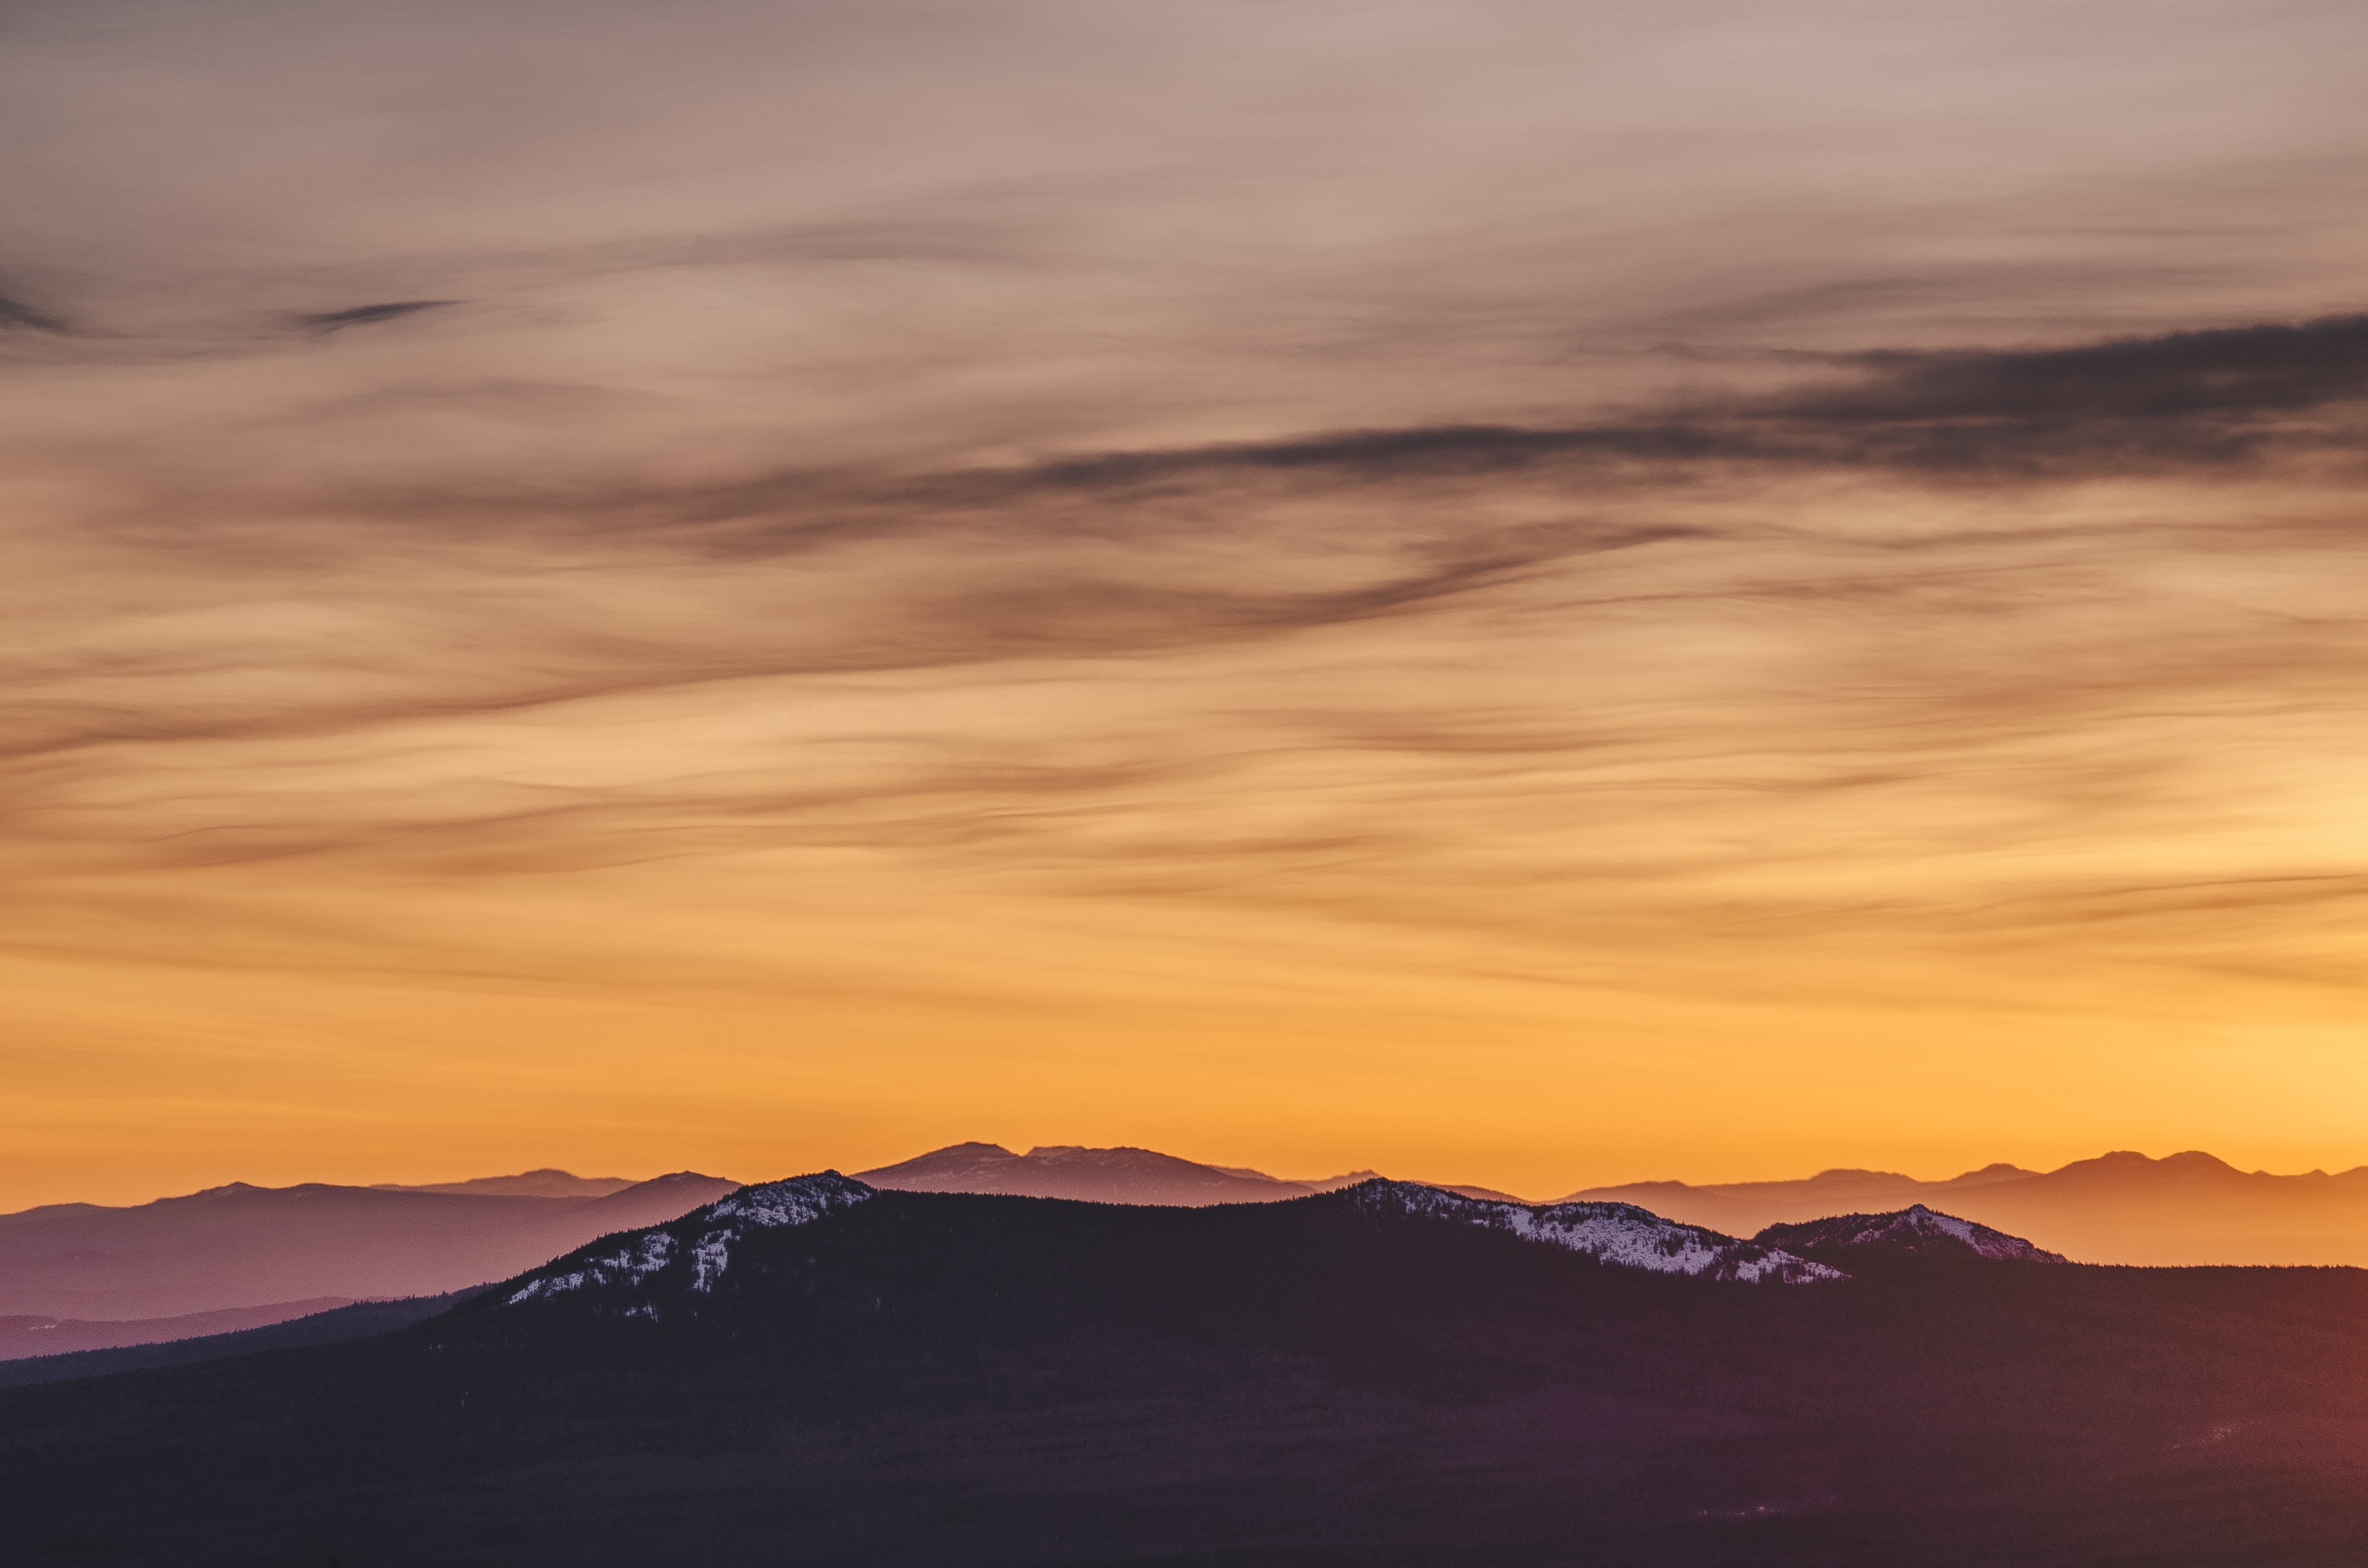 silhouette of mountain during yellow cloudy skies